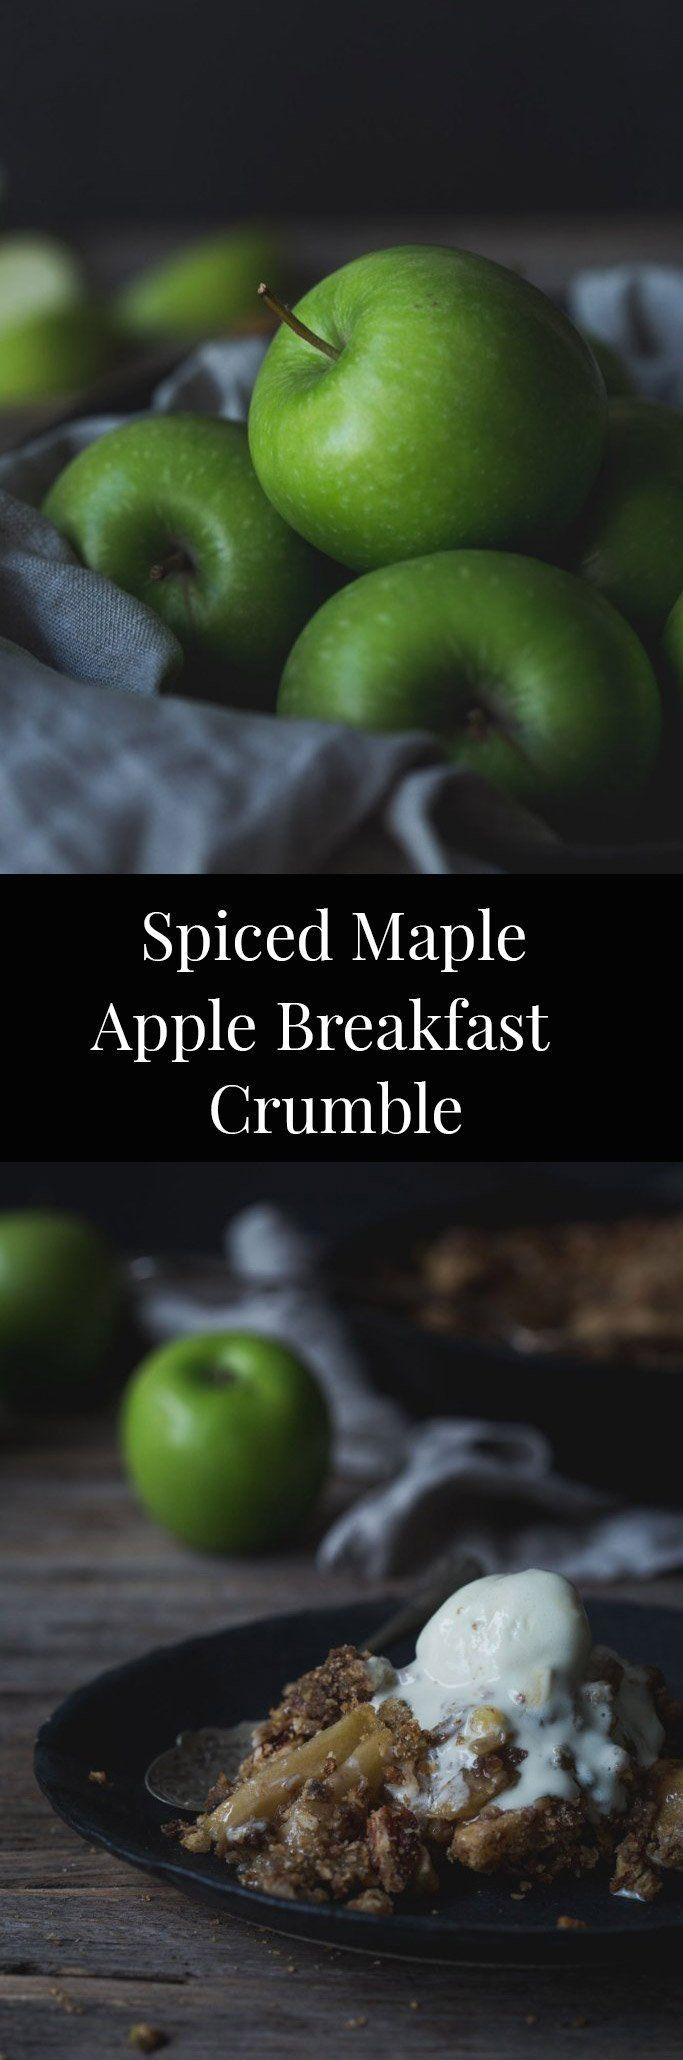 This Spiced Maple Apple Breakfast Crumble boasts spiced maple apples under a pecan oatmeal crumble. (V & GF)